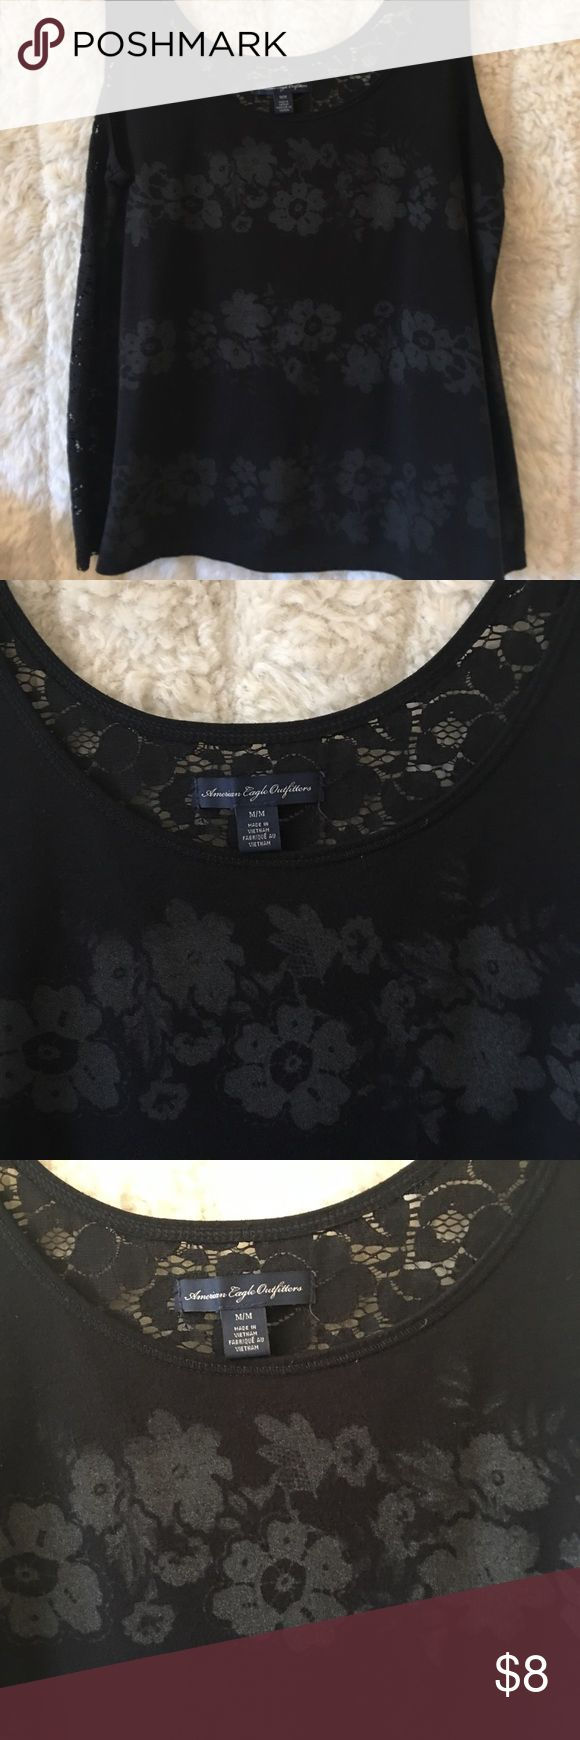 """American Eagle Outfitters Tshirt Tank Size Medium American Eagle Outfitters black lace back Tank size medium. Measures 17"""" arm pit to arm pit , 23"""" shoulder to hem, 20 1/2"""" across the bottom. American Eagle Outfitters Tops Tank Tops"""